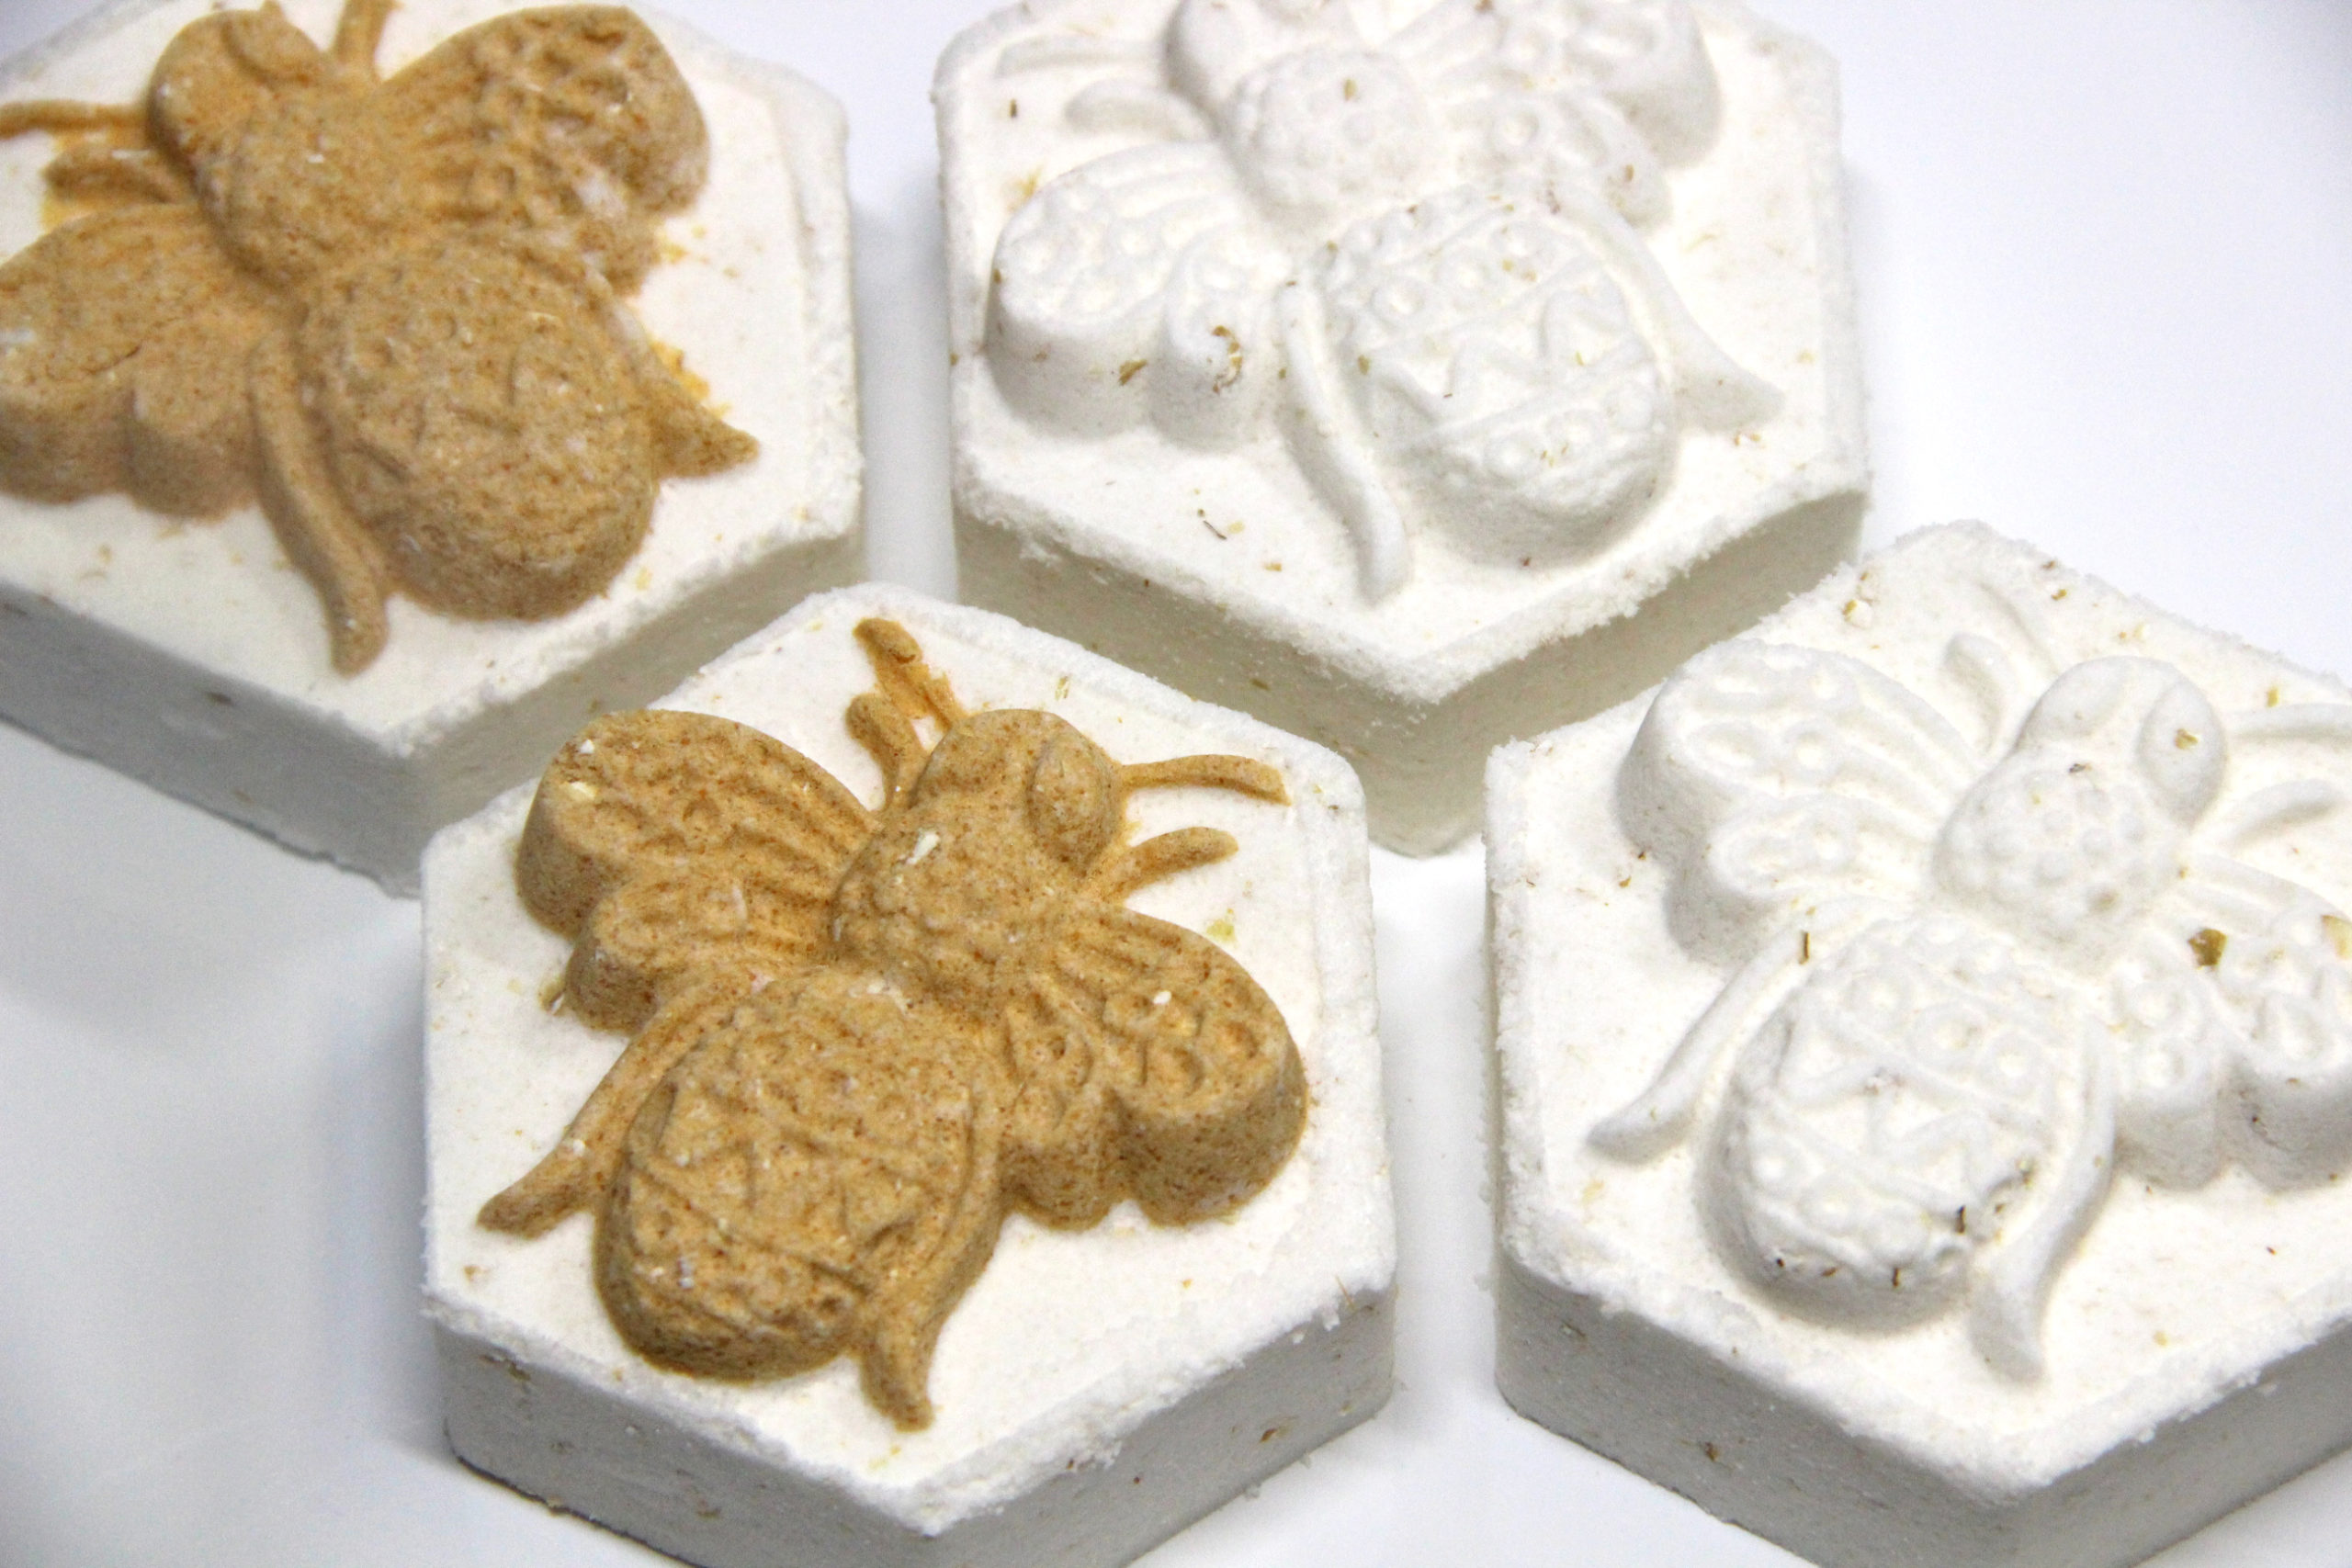 Honey Oat Bath Bombs with Electra-Press and Hex Mold